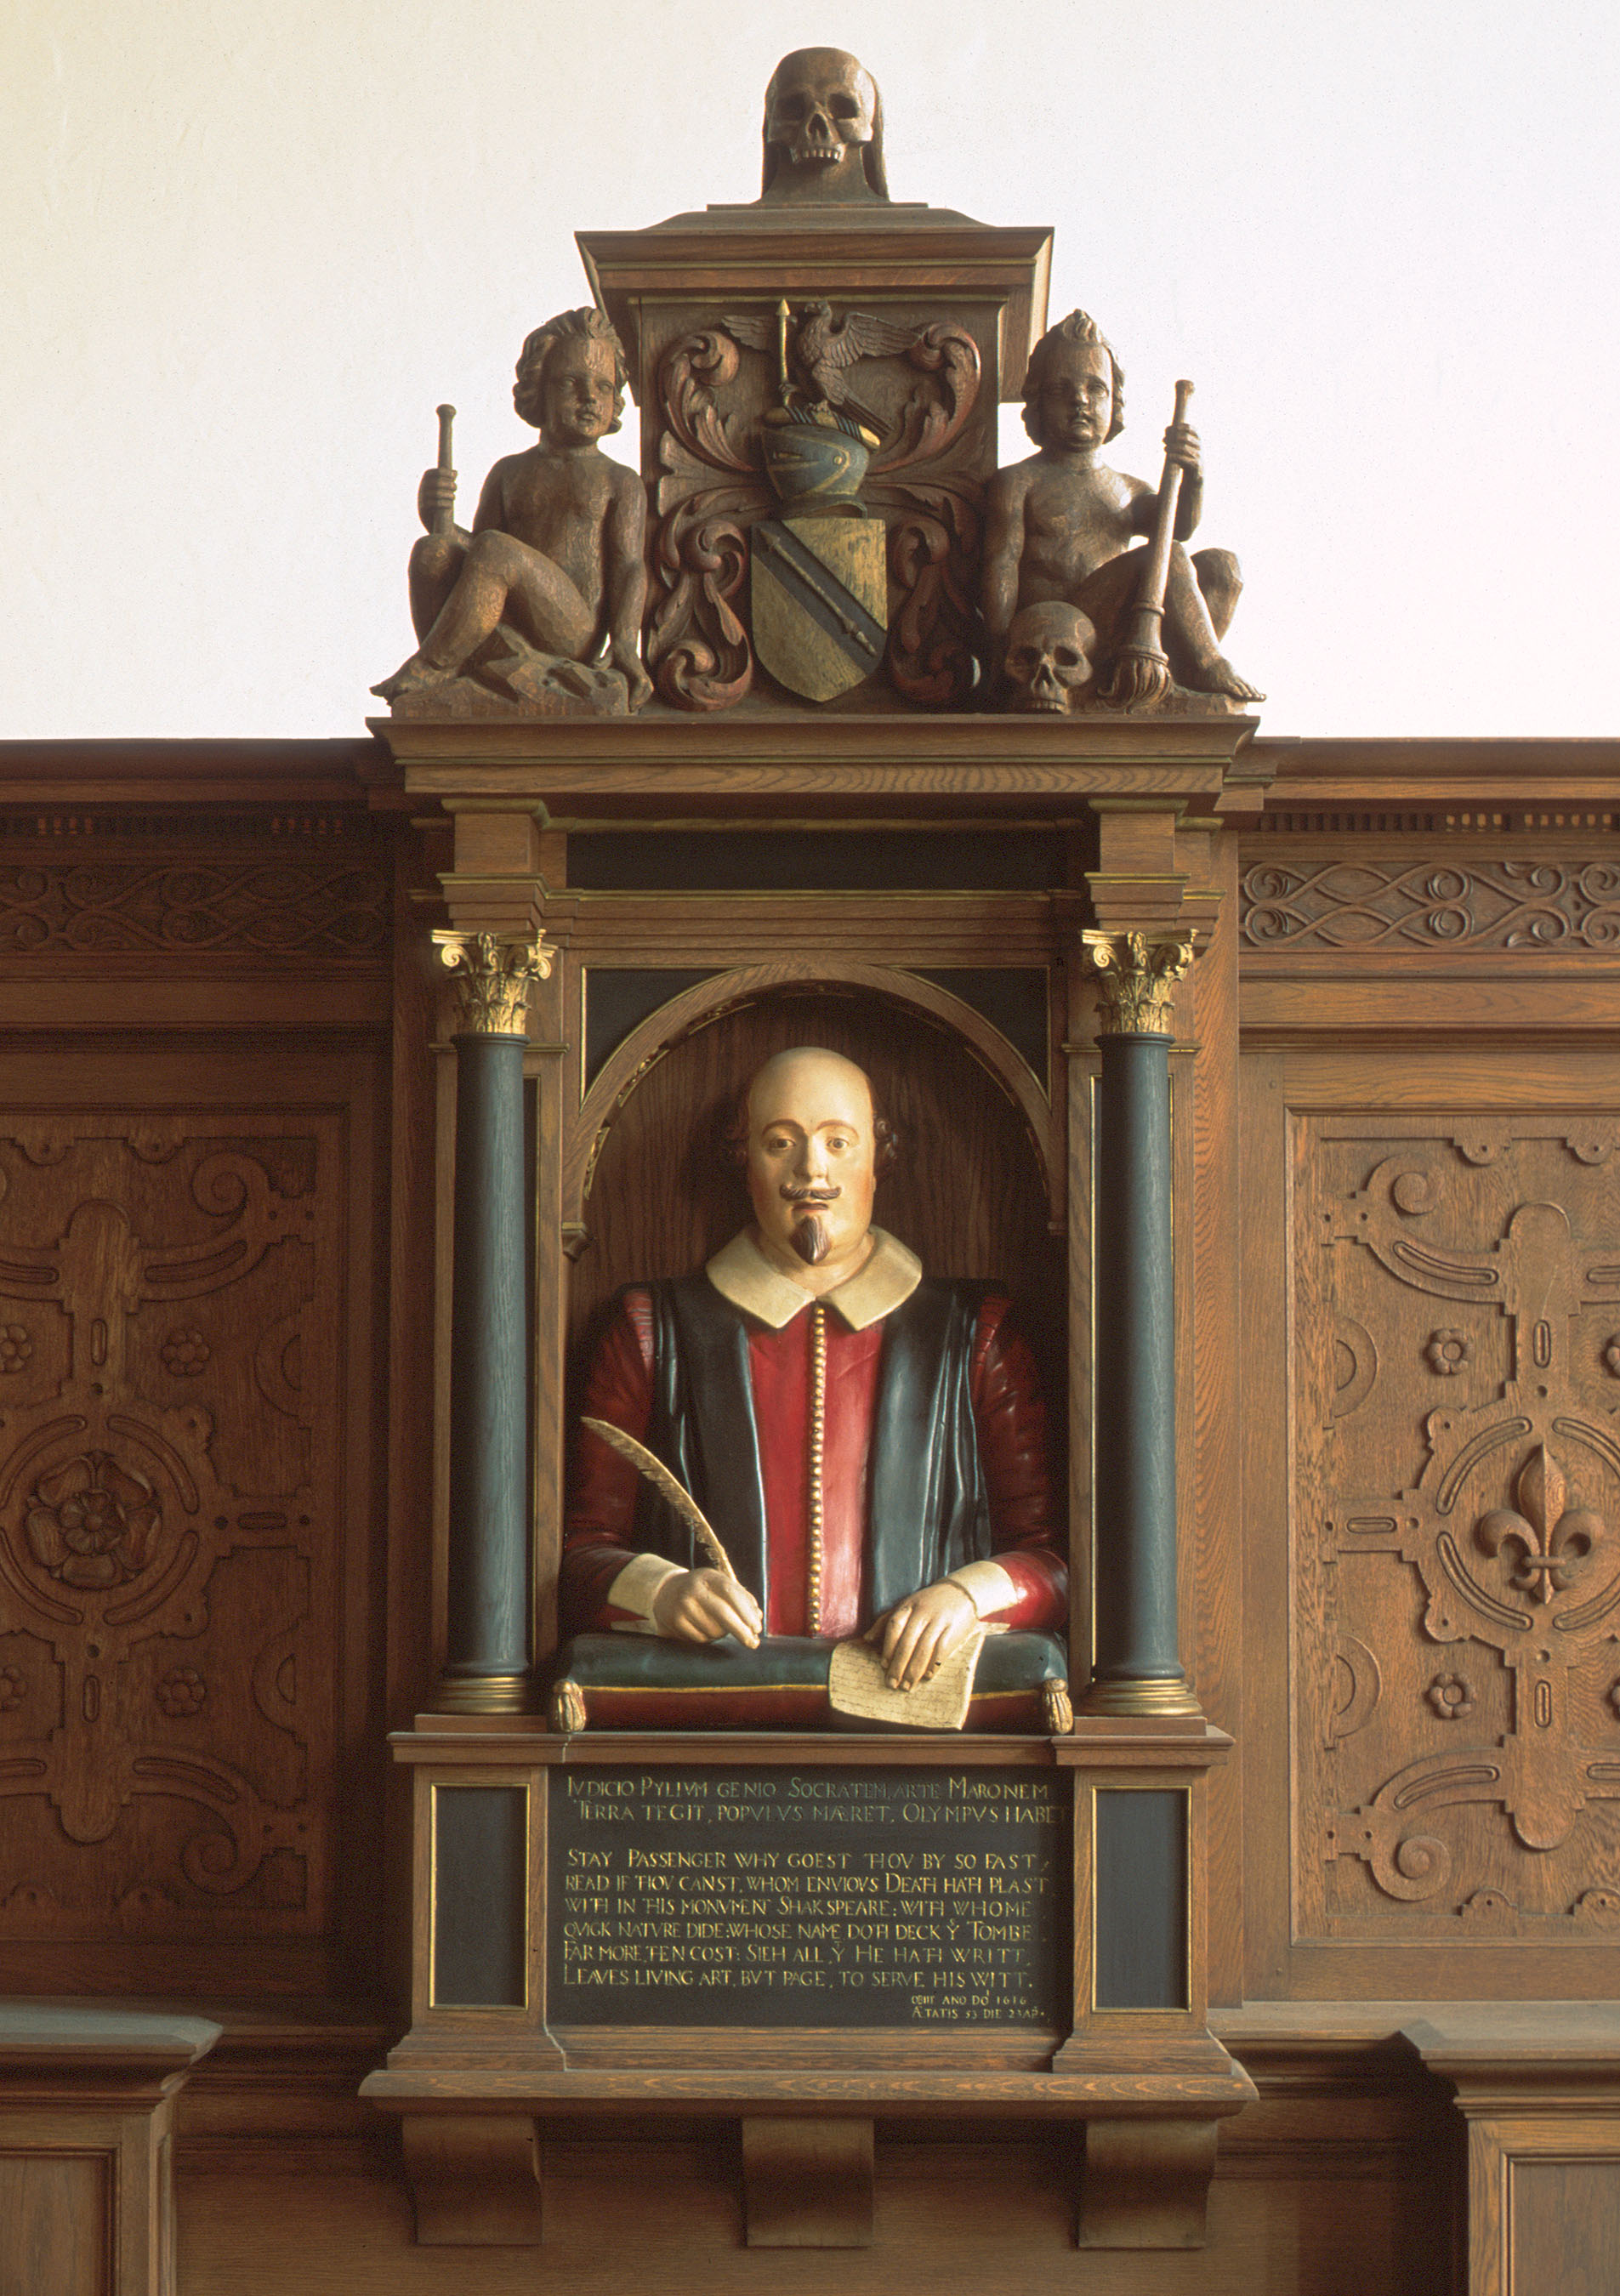 william shakespeares professional life in london William shakespeare is widely regarded and 1592 when he is first mentioned in london further information about the life of william shakespeare can be found.